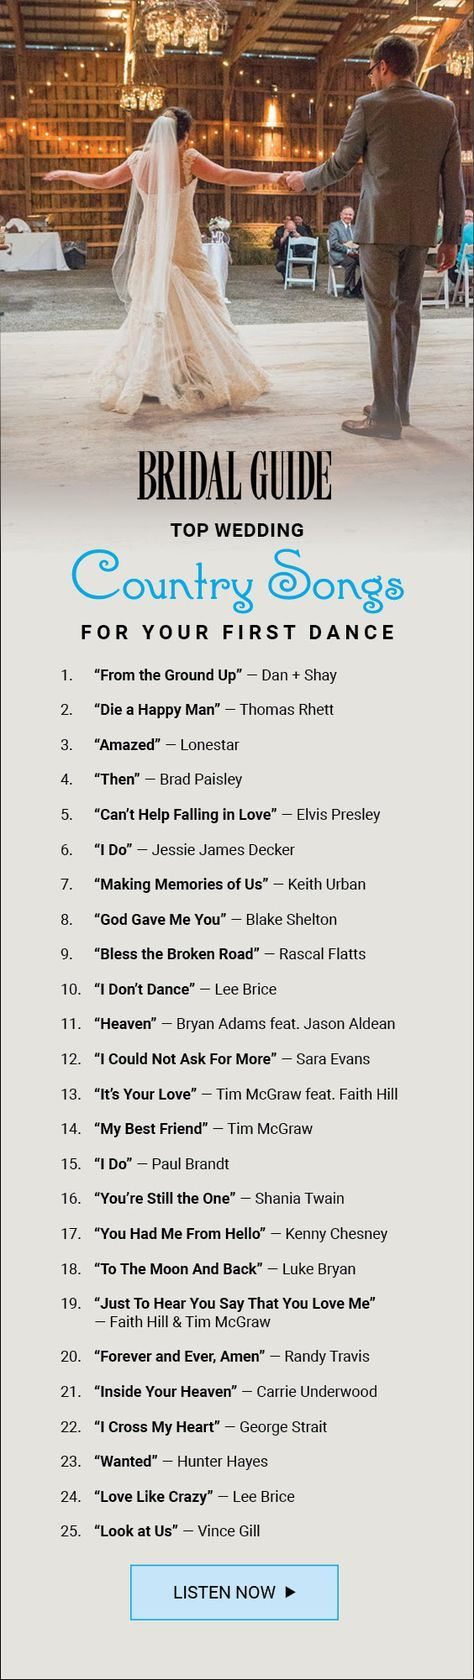 Best 25 country songs ideas on pinterest country playlist here are the top country songs for your first dance as a married couple hexwebz Gallery